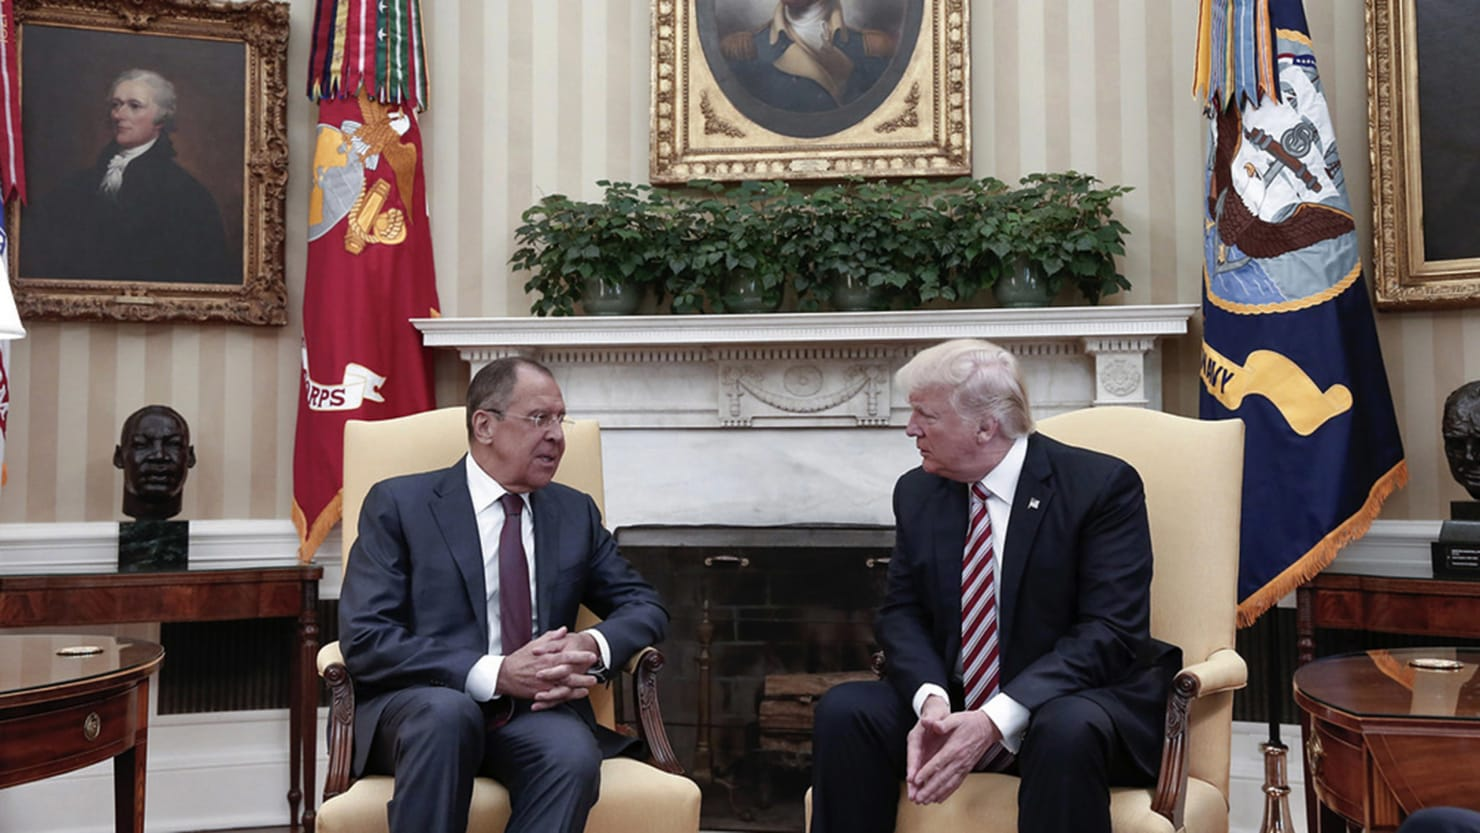 oval office picture. Russian Foreign Ministry Photo Via AP Oval Office Picture